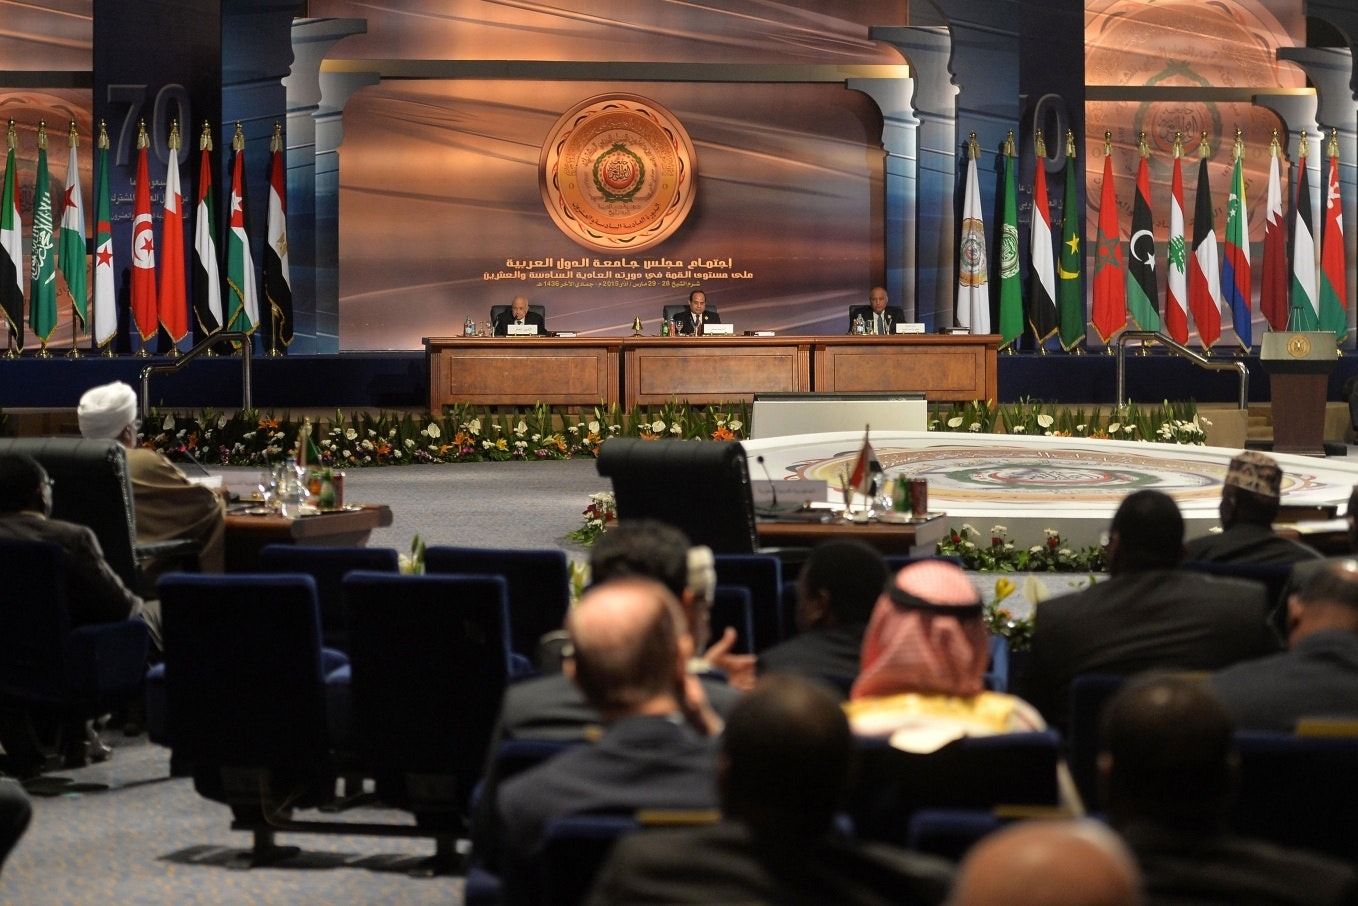 Meeting hall with Arab League of Nations flags